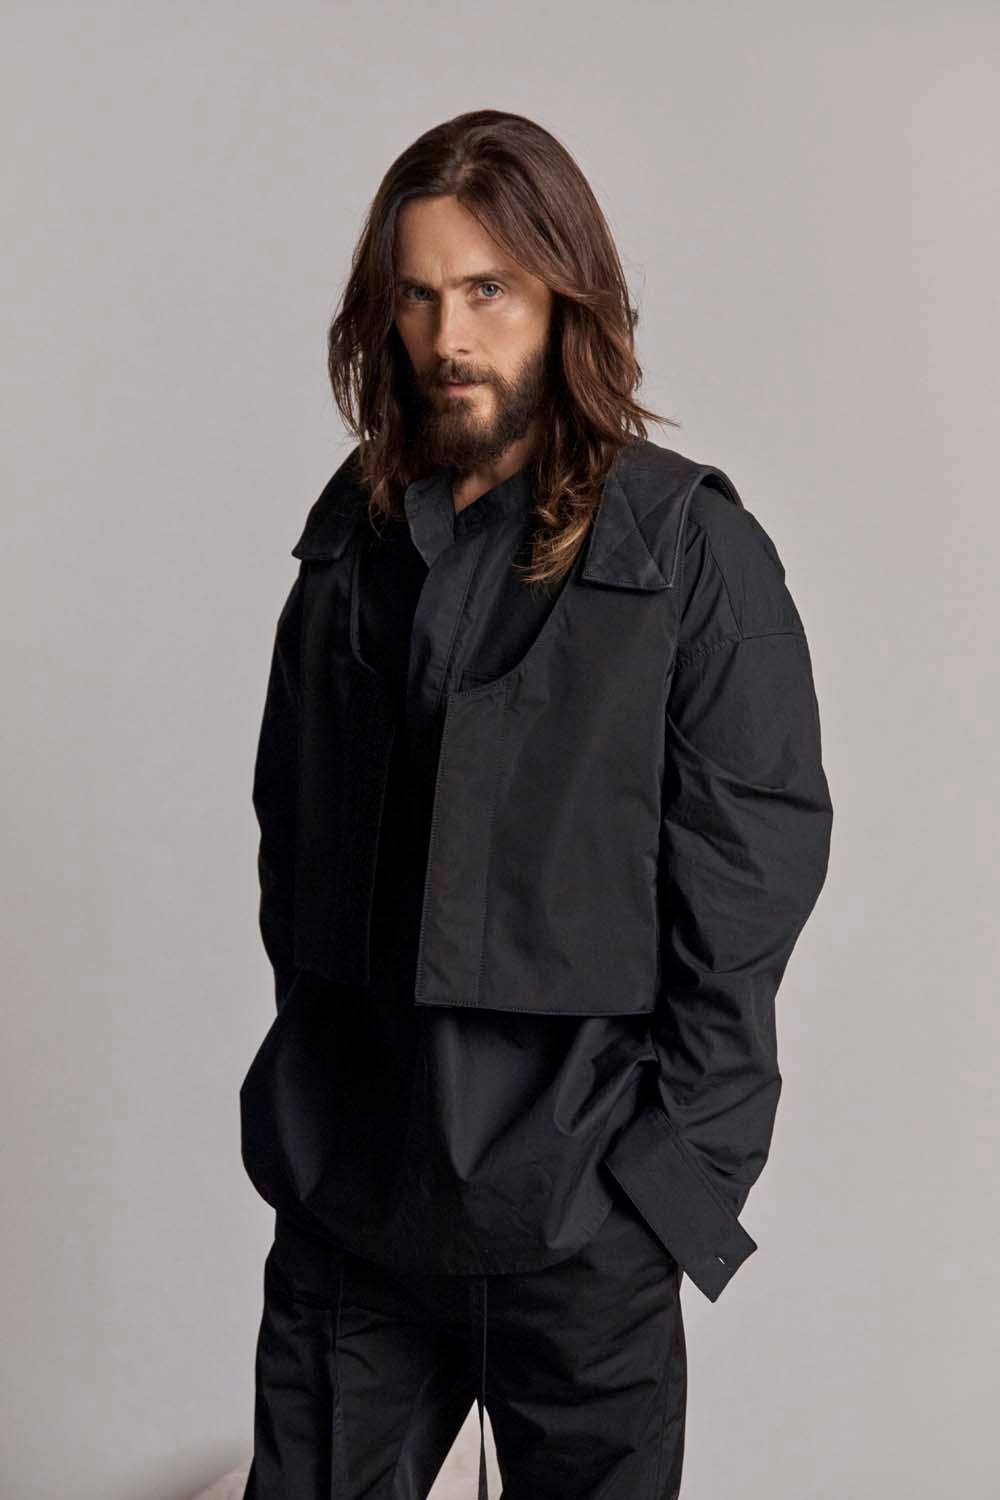 https_%2F%2Fhypebeast.com%2Fimage%2F2018%2F09%2Ffear-of-god-6-sixth-collection-jared-leto-nike-23.jpg